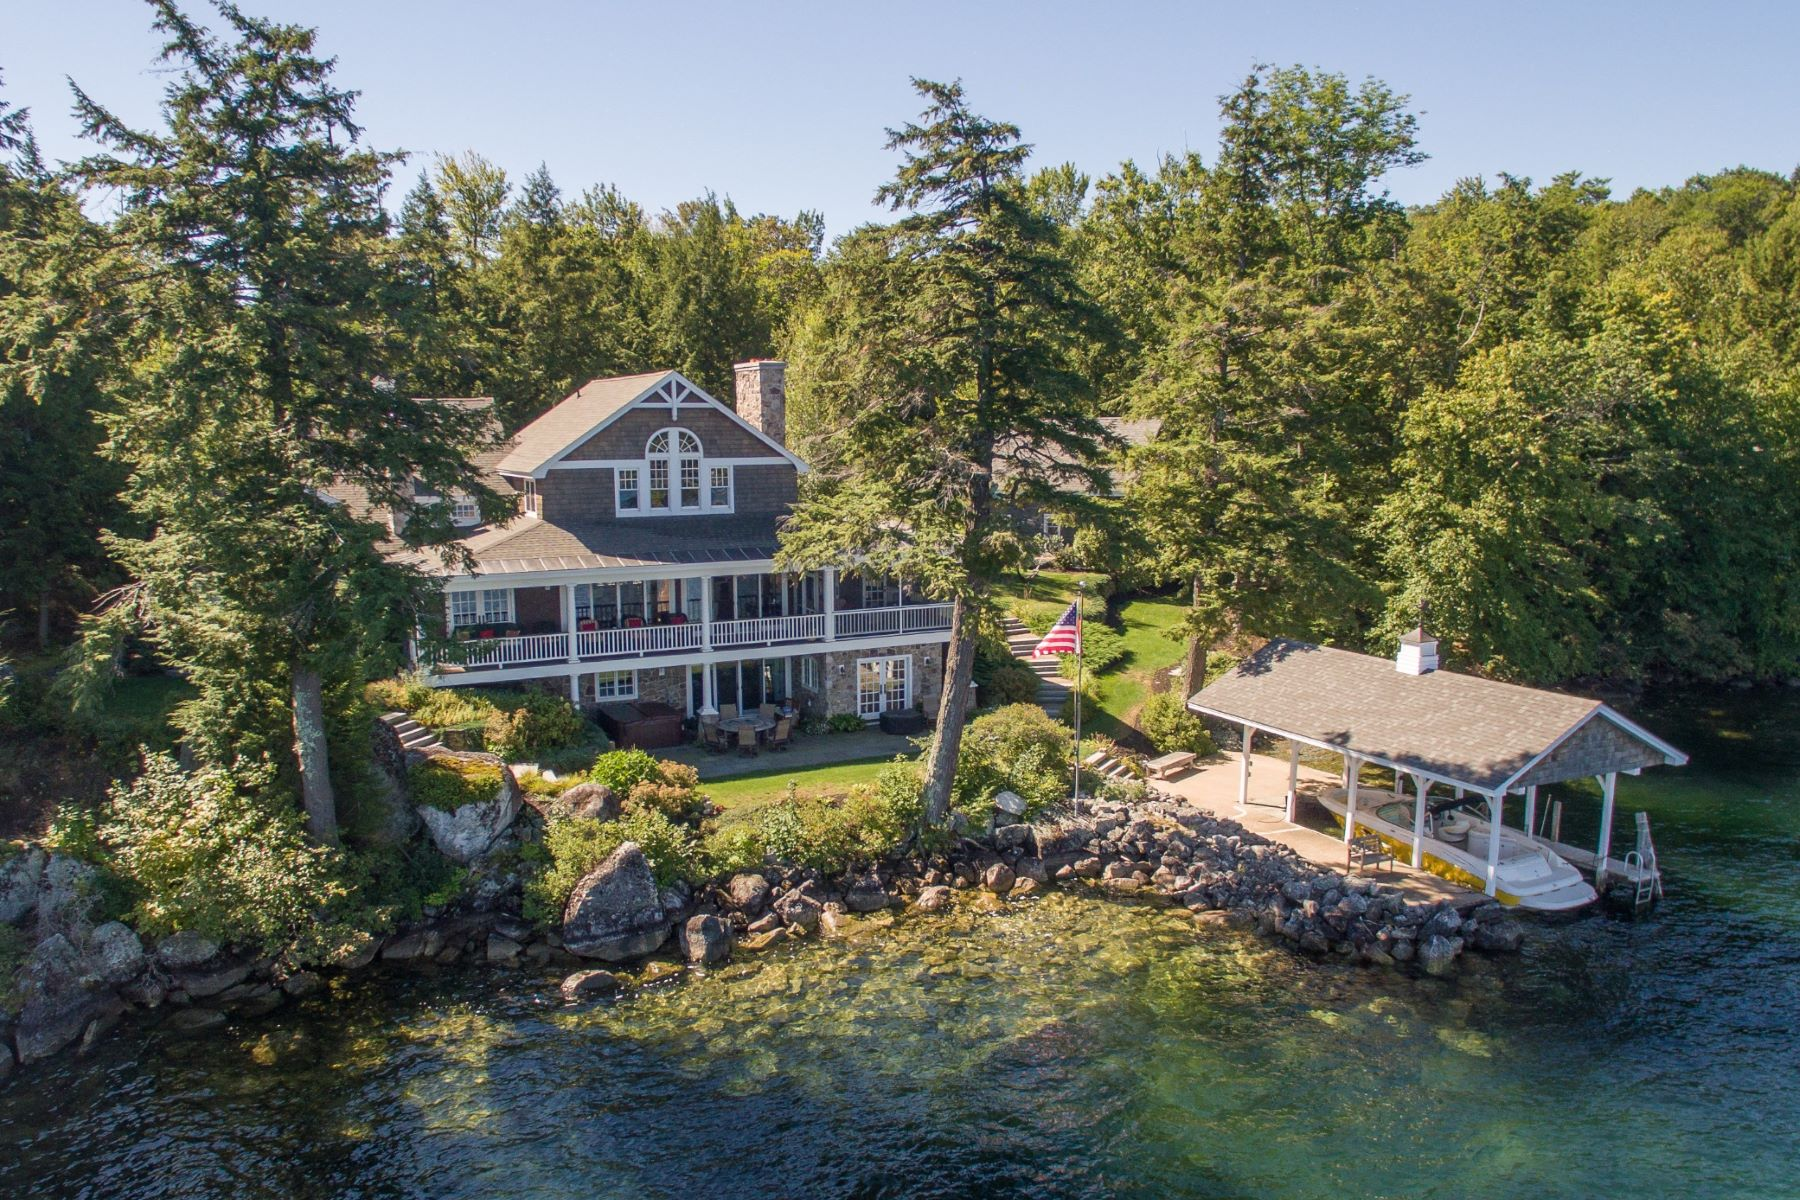 Single Family Home for Sale at Woodlands on Lake Winnipesaukee 280 Woodlands Rd Alton, New Hampshire, 03810 United States